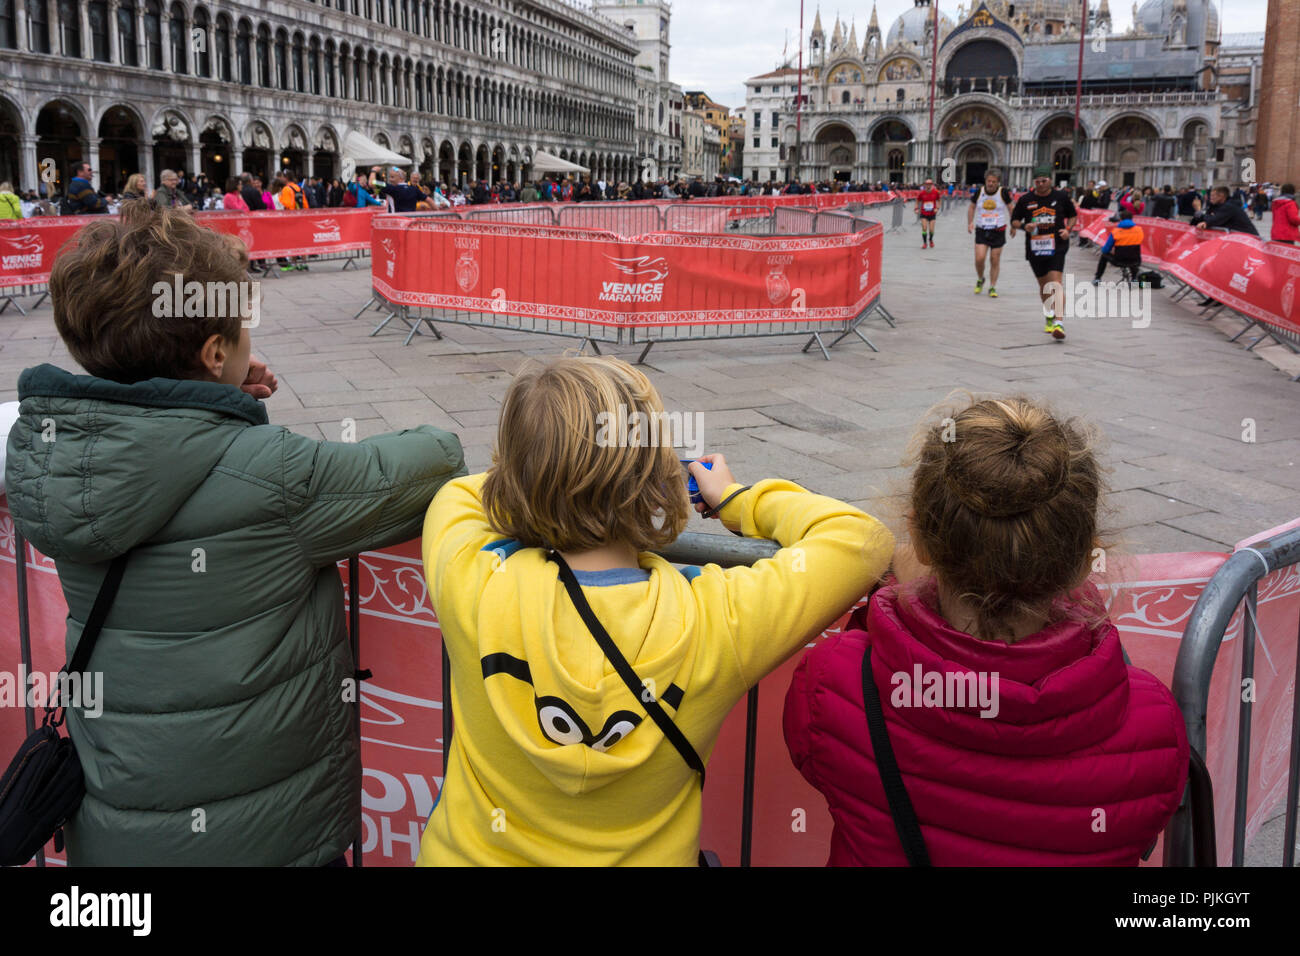 Venice, St. Mark's Square, Venice Marathon, watched by children - Stock Image